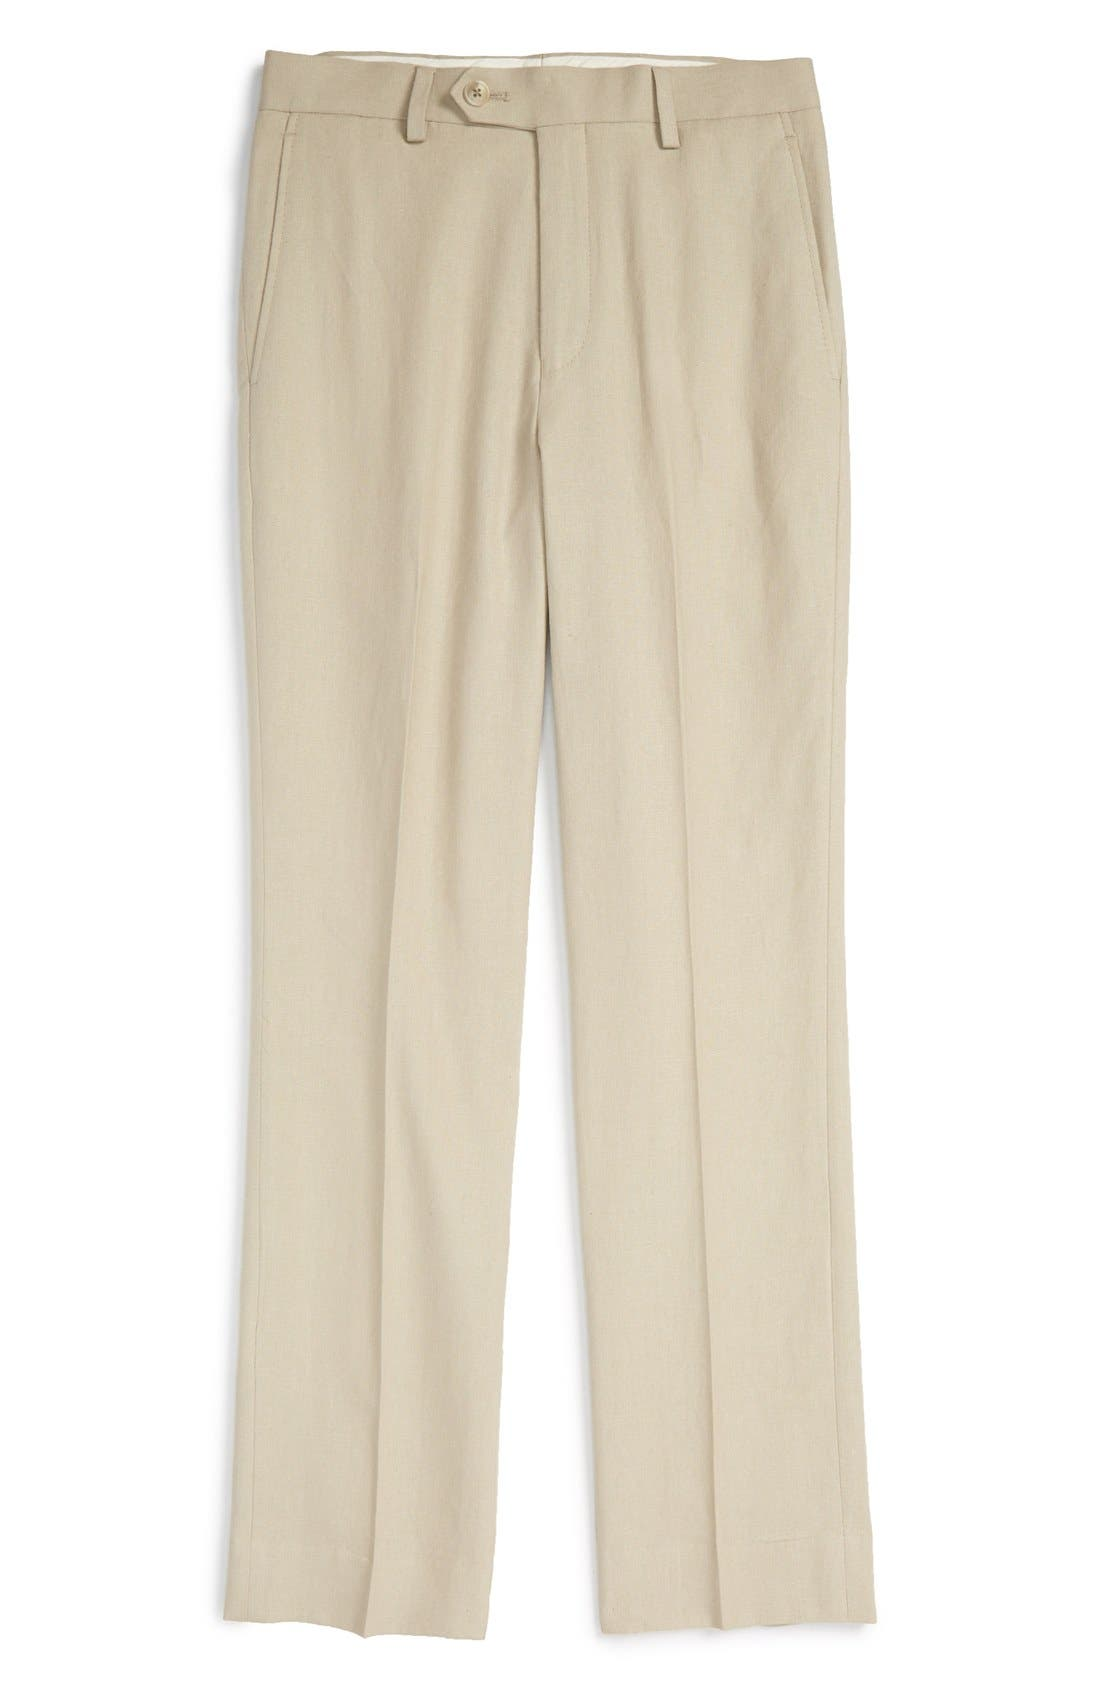 Michael Kors 'Kirton' Flat Front Linen Blend Trousers (Big Boys)